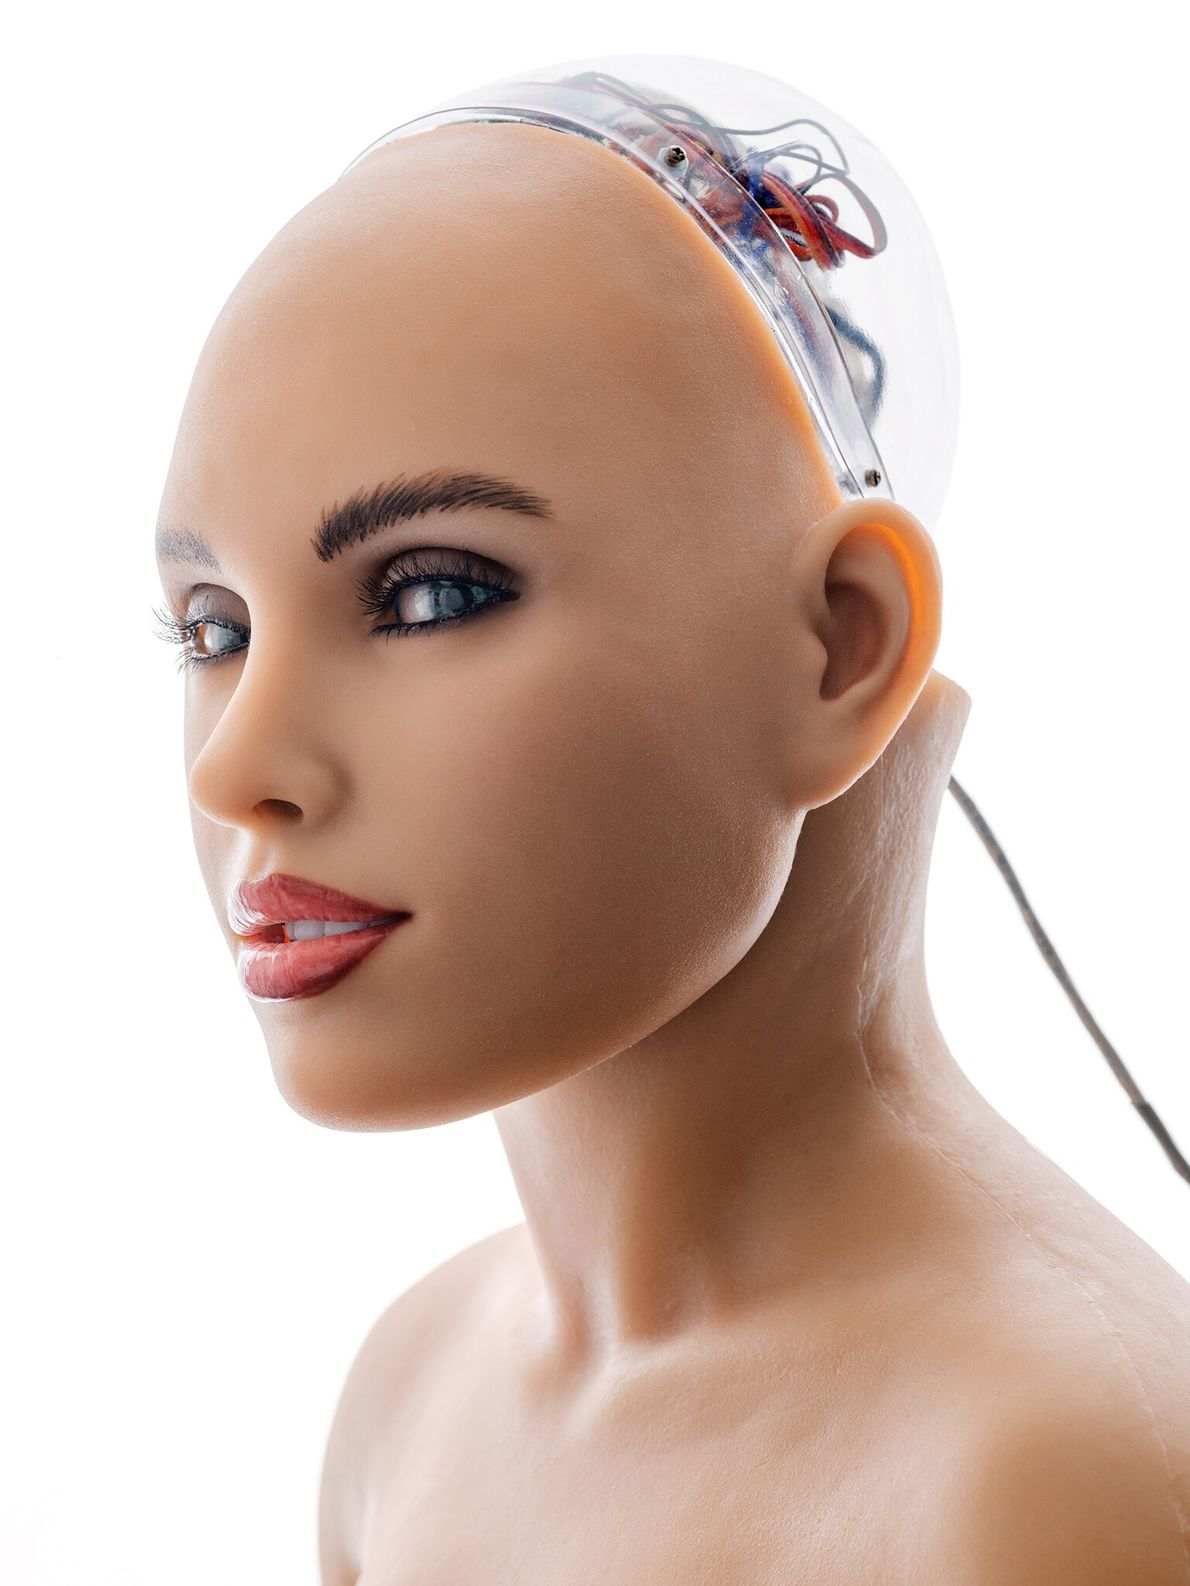 Some roboticists create machines that imitate and resemble humans in detail. An example is Harmony, an ...